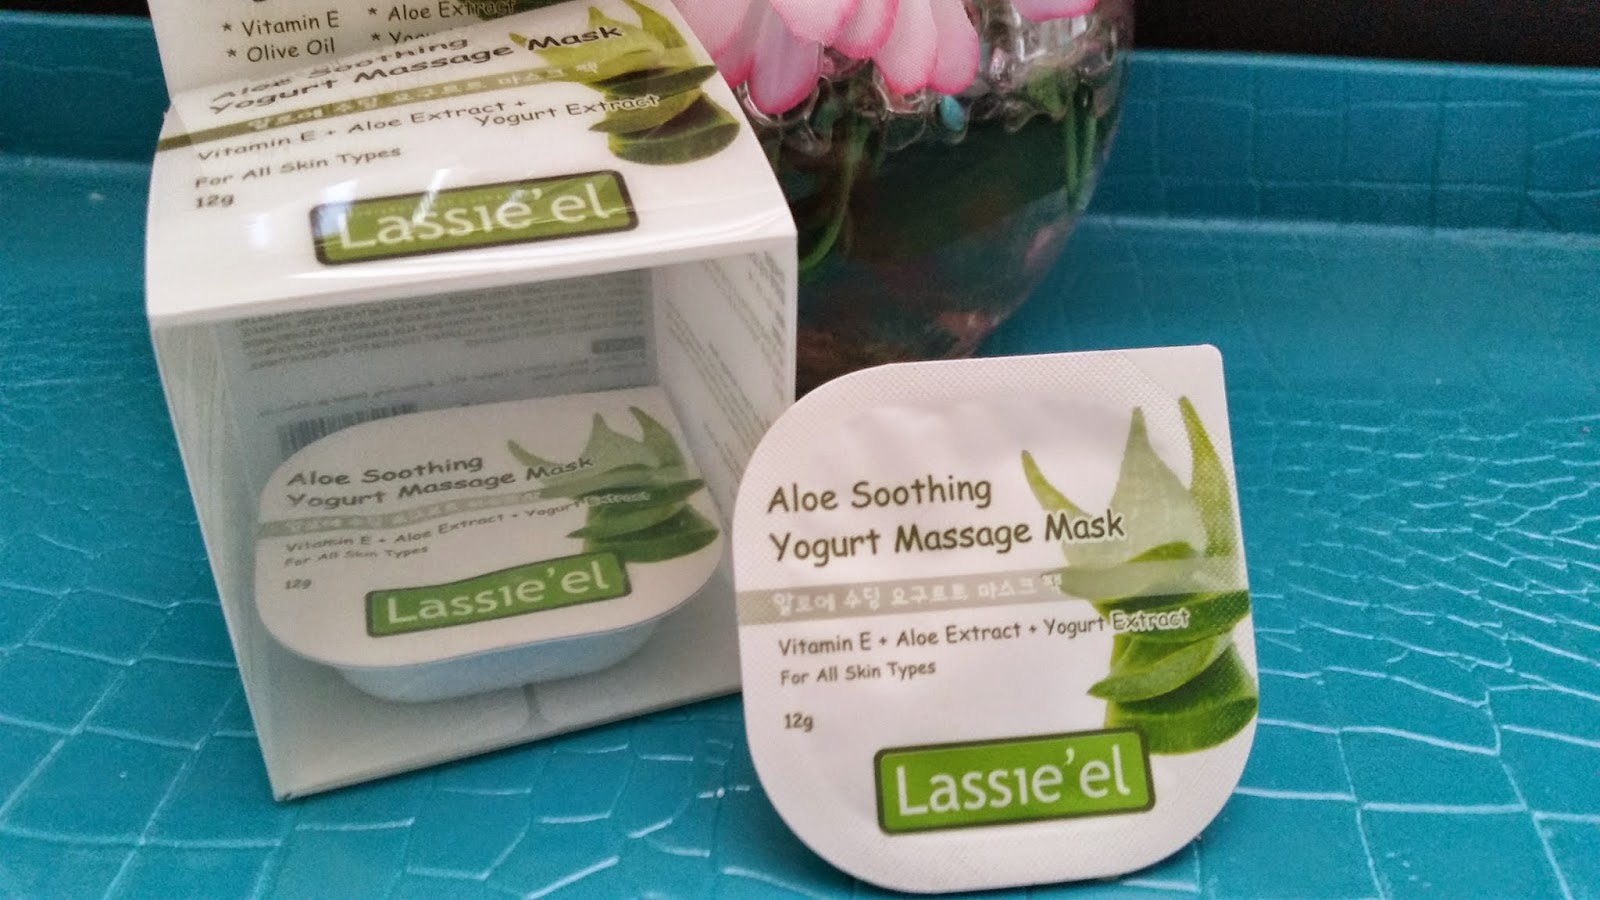 Lassie'el Aloe Soothing Yogurt Massage Mask